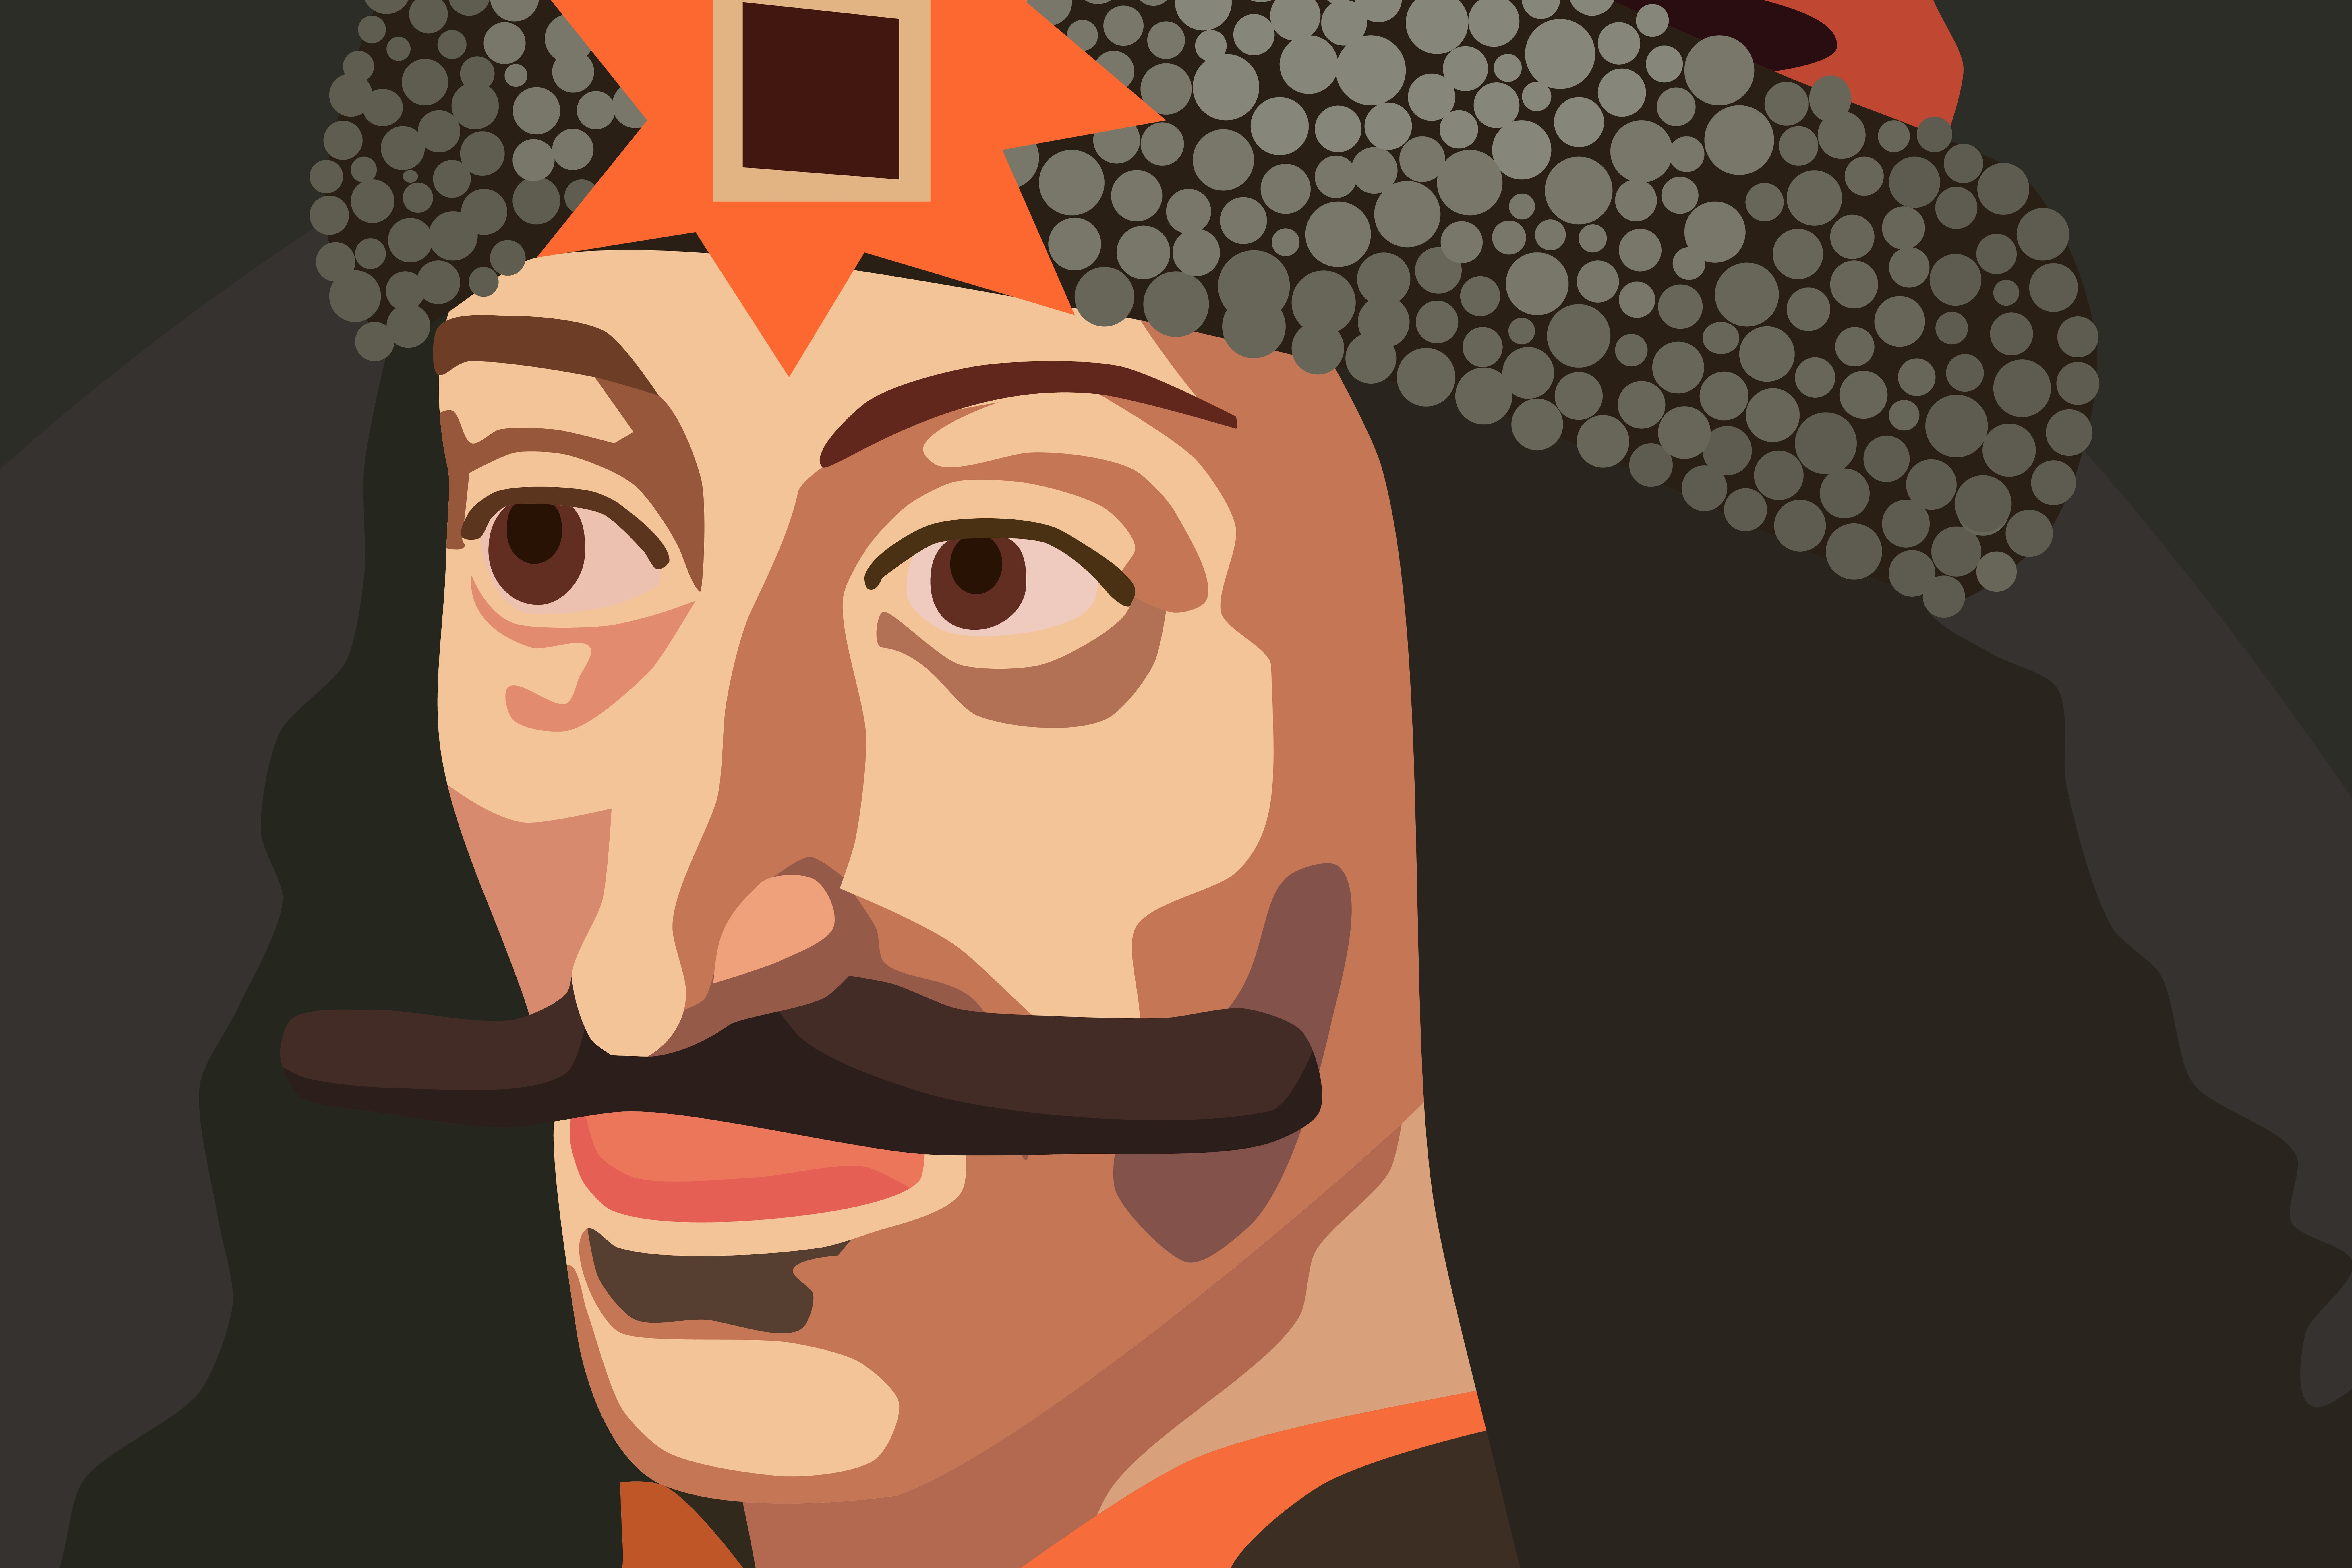 A depiction of Vlad Tepes, who inspired Bram Stoker's Dracula